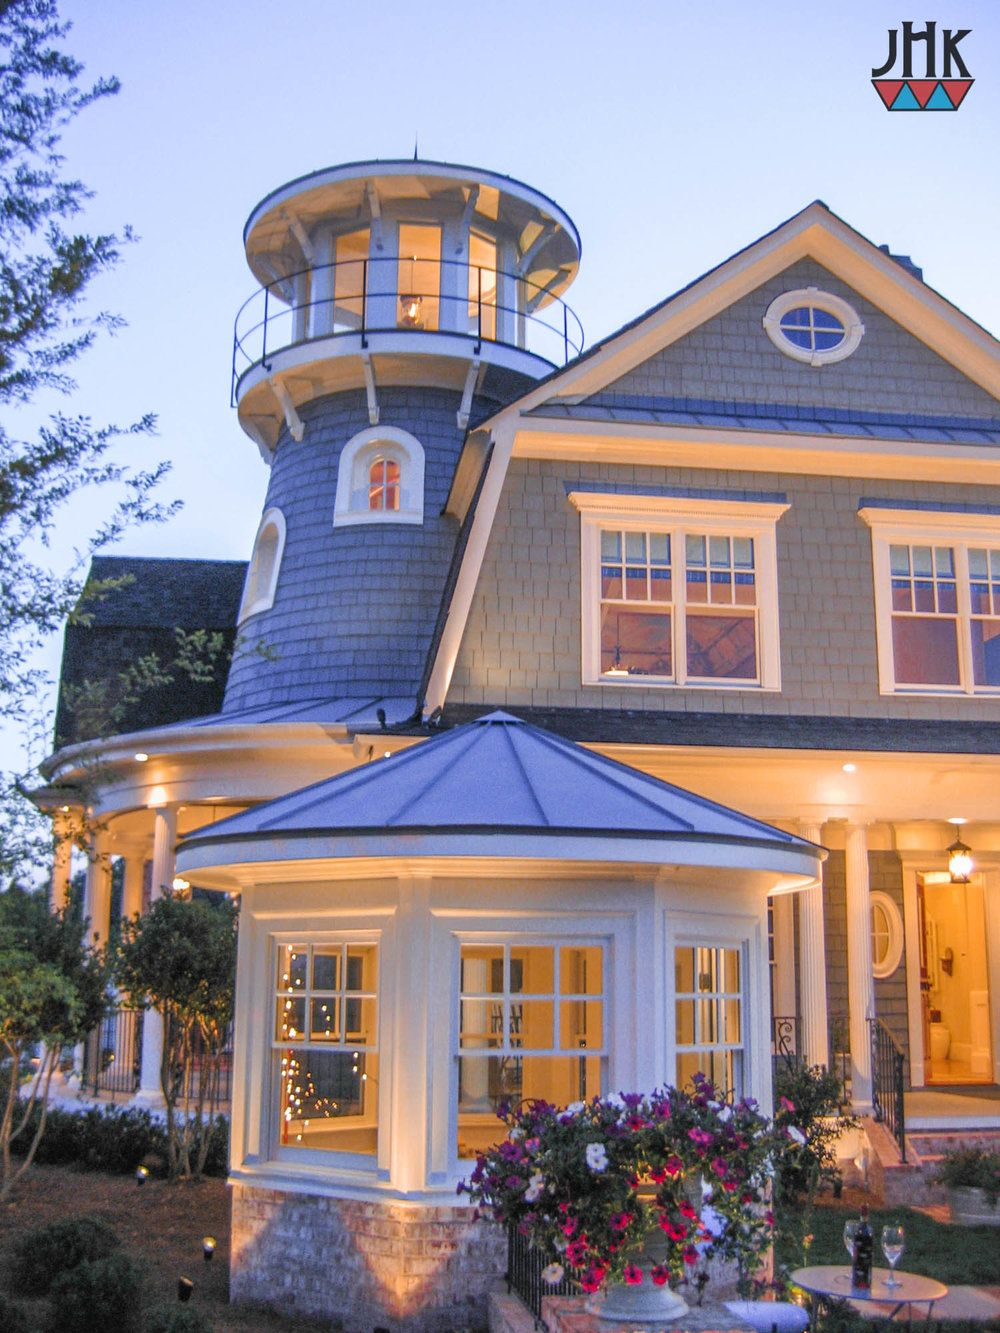 Lightkeepers House | Klippel Residential Designs | Seaside ... on history house, hamster house, pet shop house, hunting island light keeper house, first light house, photography house, dog kennel house,